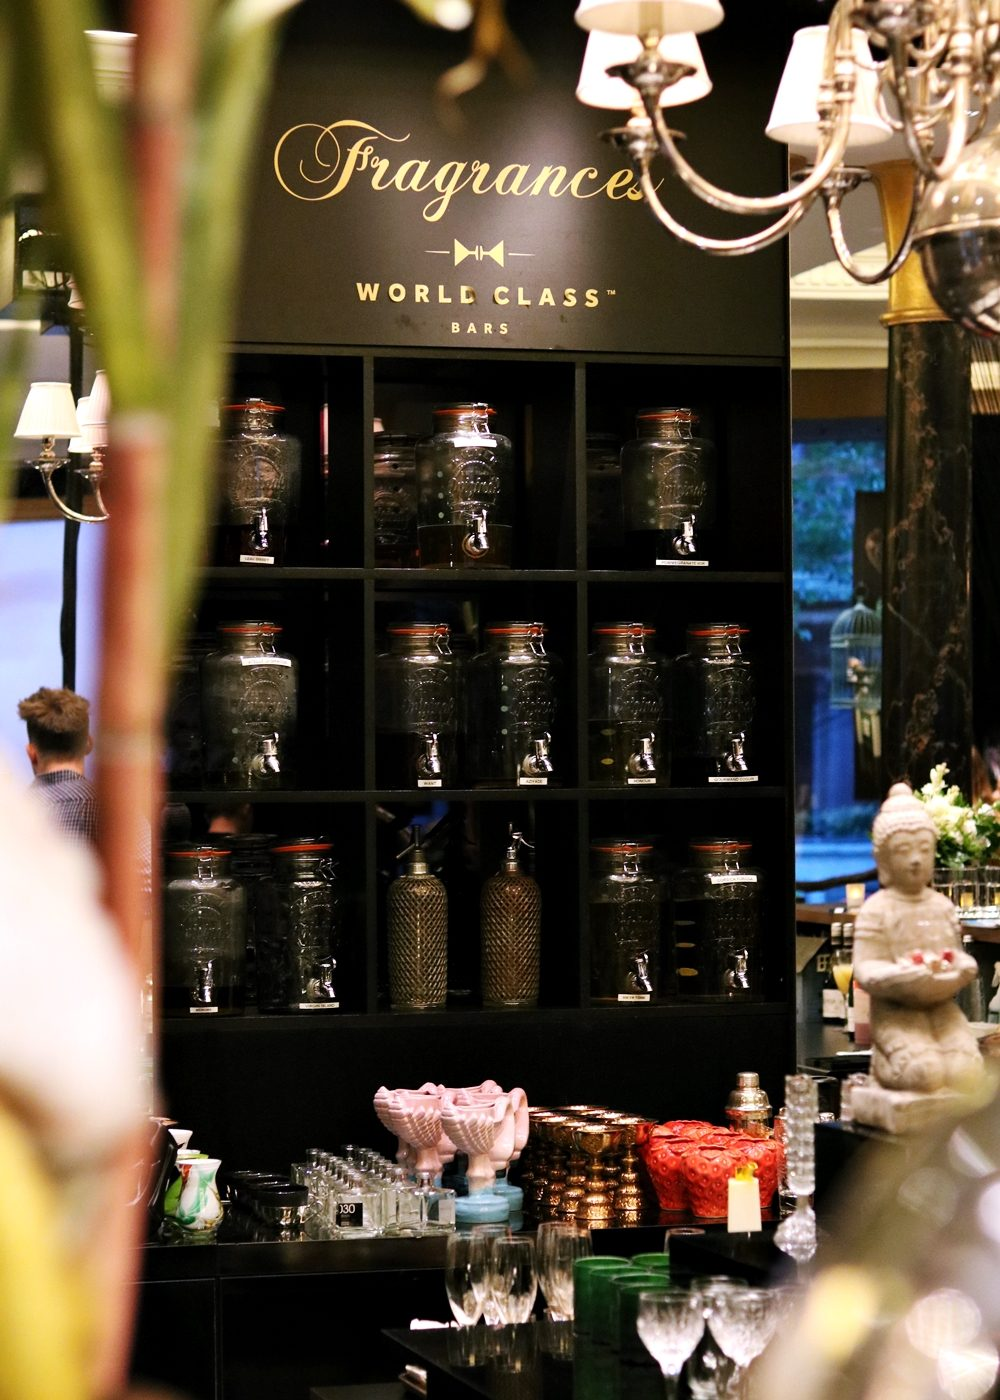 fragrances-bar-ritz-carlton-hotel-berlin-2